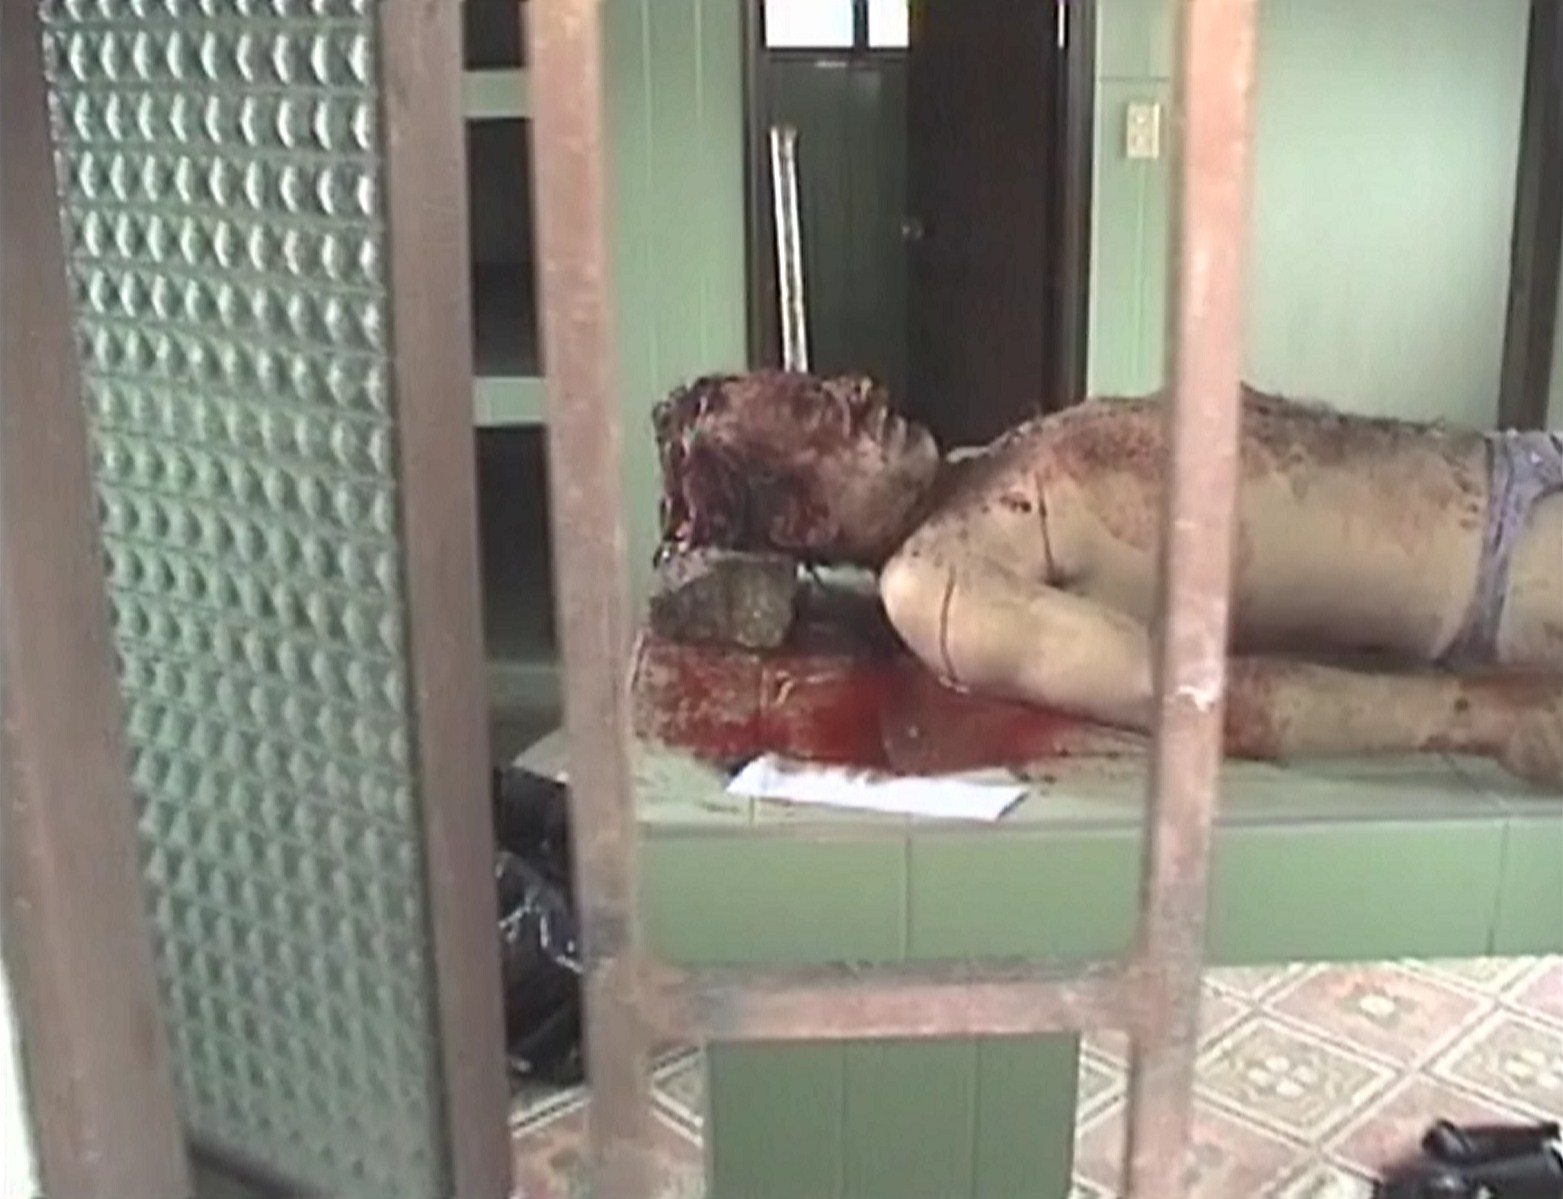 http://sinsofcinema.com/Images/Orozco%20the%20Embalmer/Orozco%201.jpg